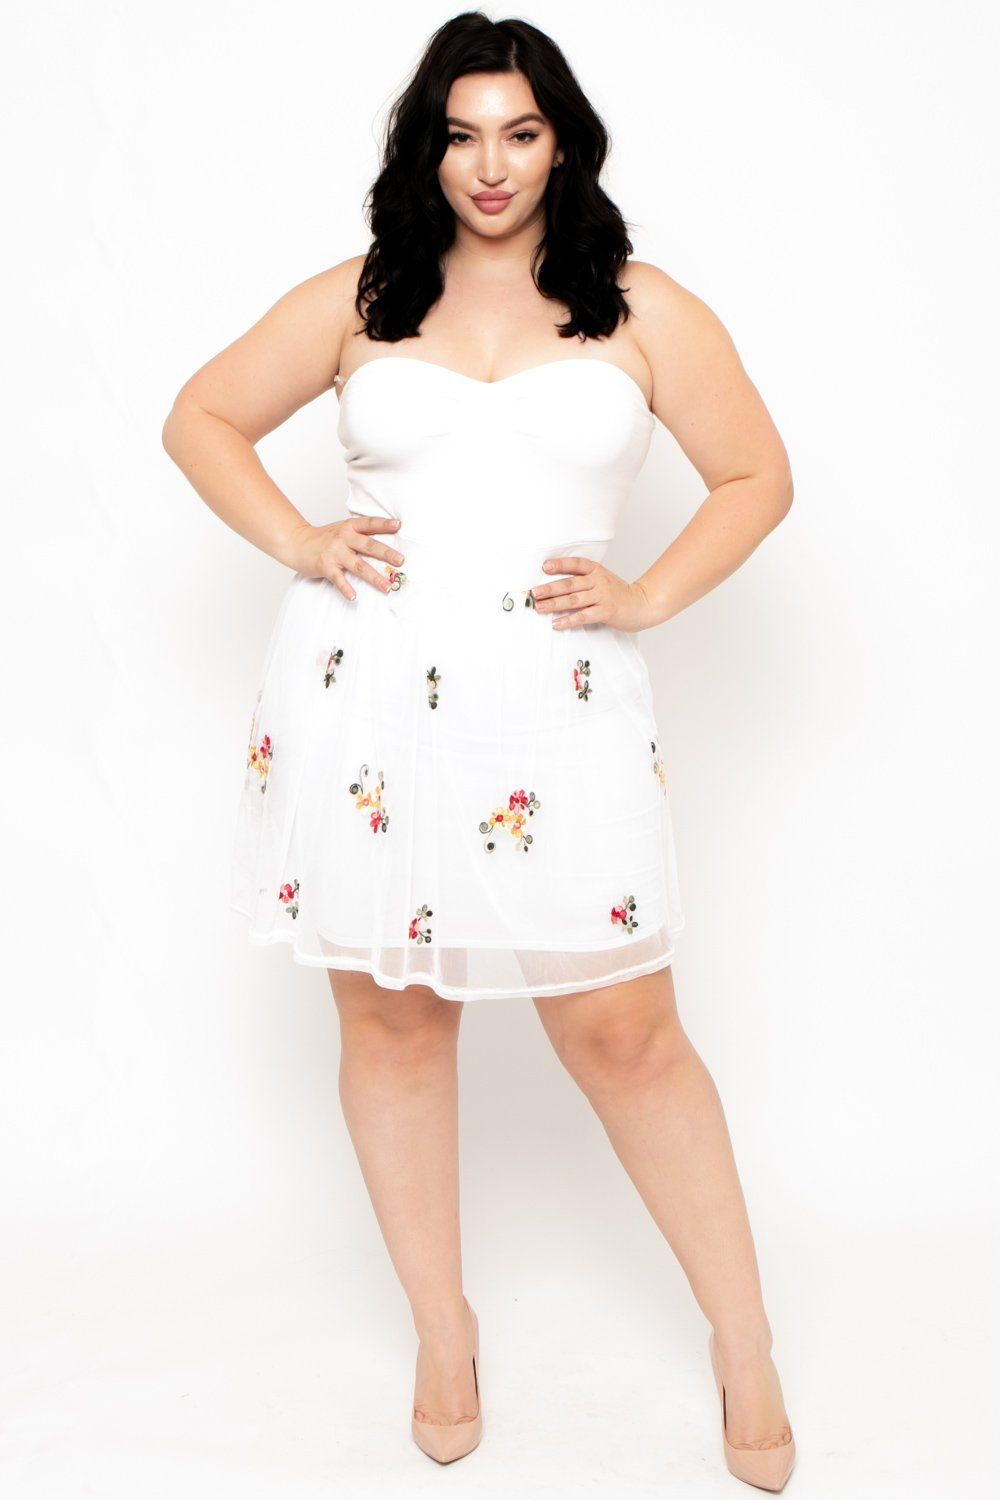 Plus Size Floral Mesh Contrast Ballerina Dress- White | Moms Outfit ...